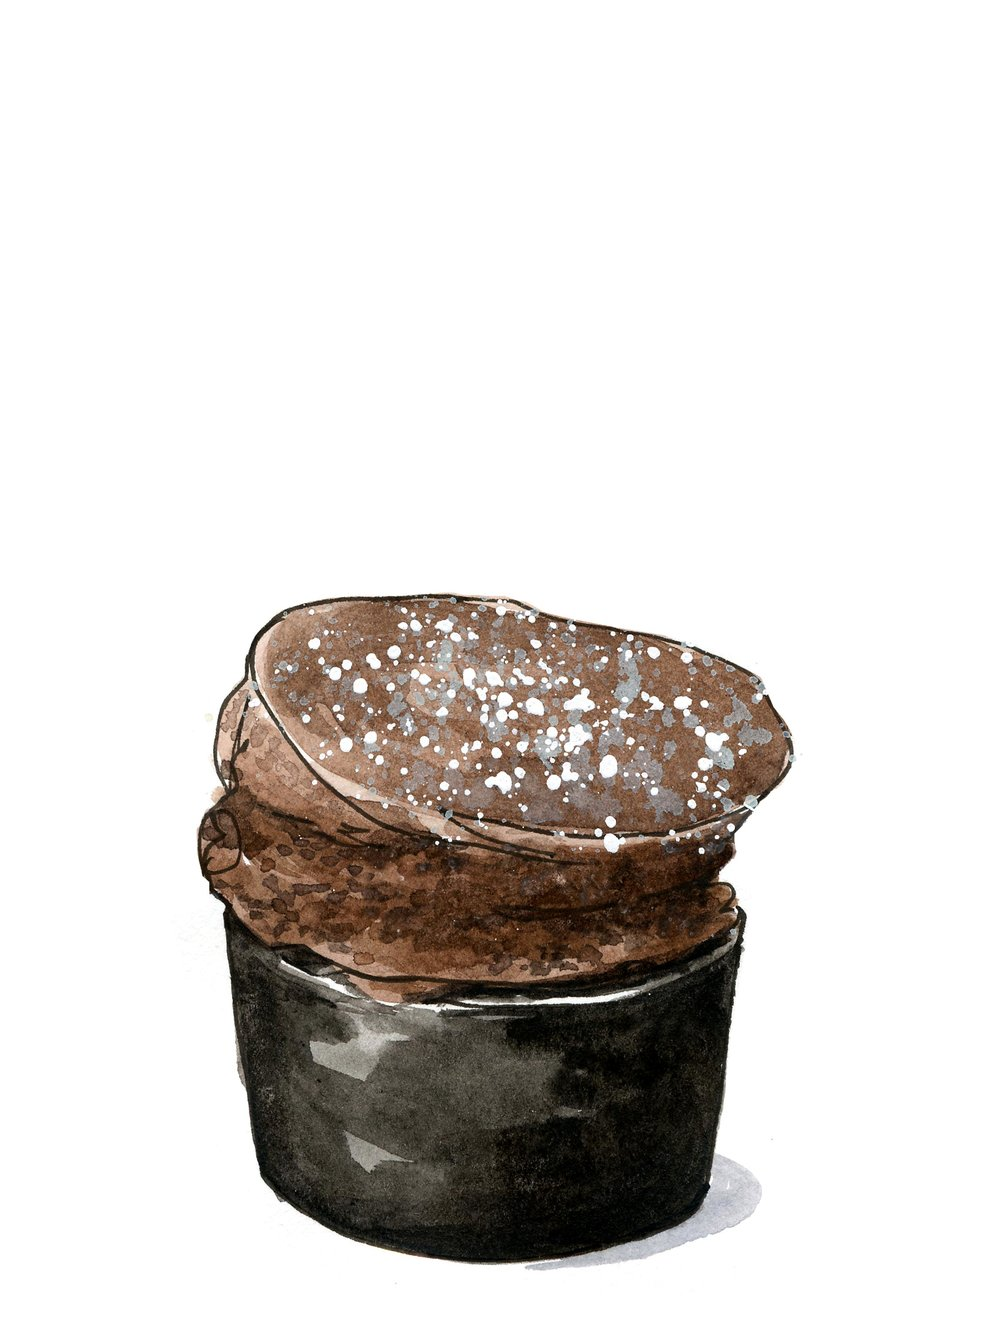 Chocolate-Souffle.jpg